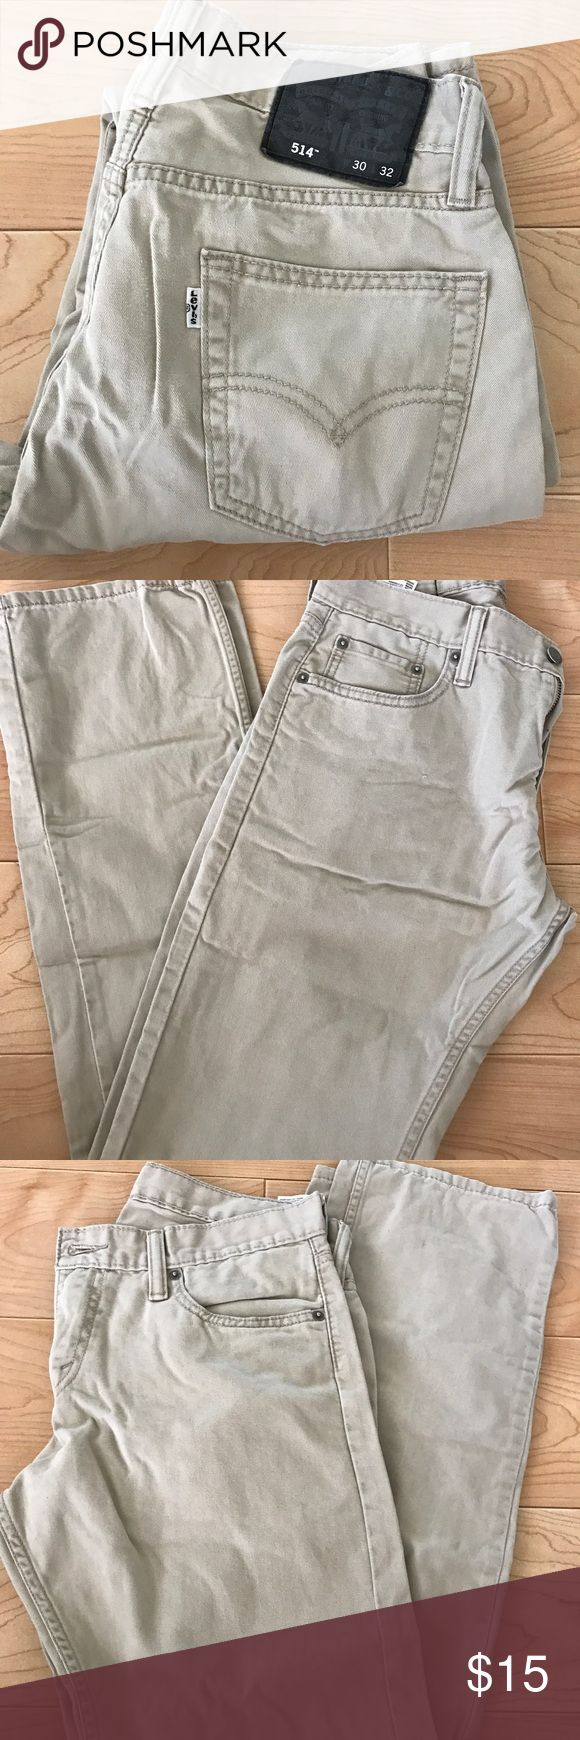 Levi's 514 Slim Men Levi's 514 Slim Men W30 x L32 in tan perfect to dress up or down with your favorite shirt or polos. Levi's Jeans Slim